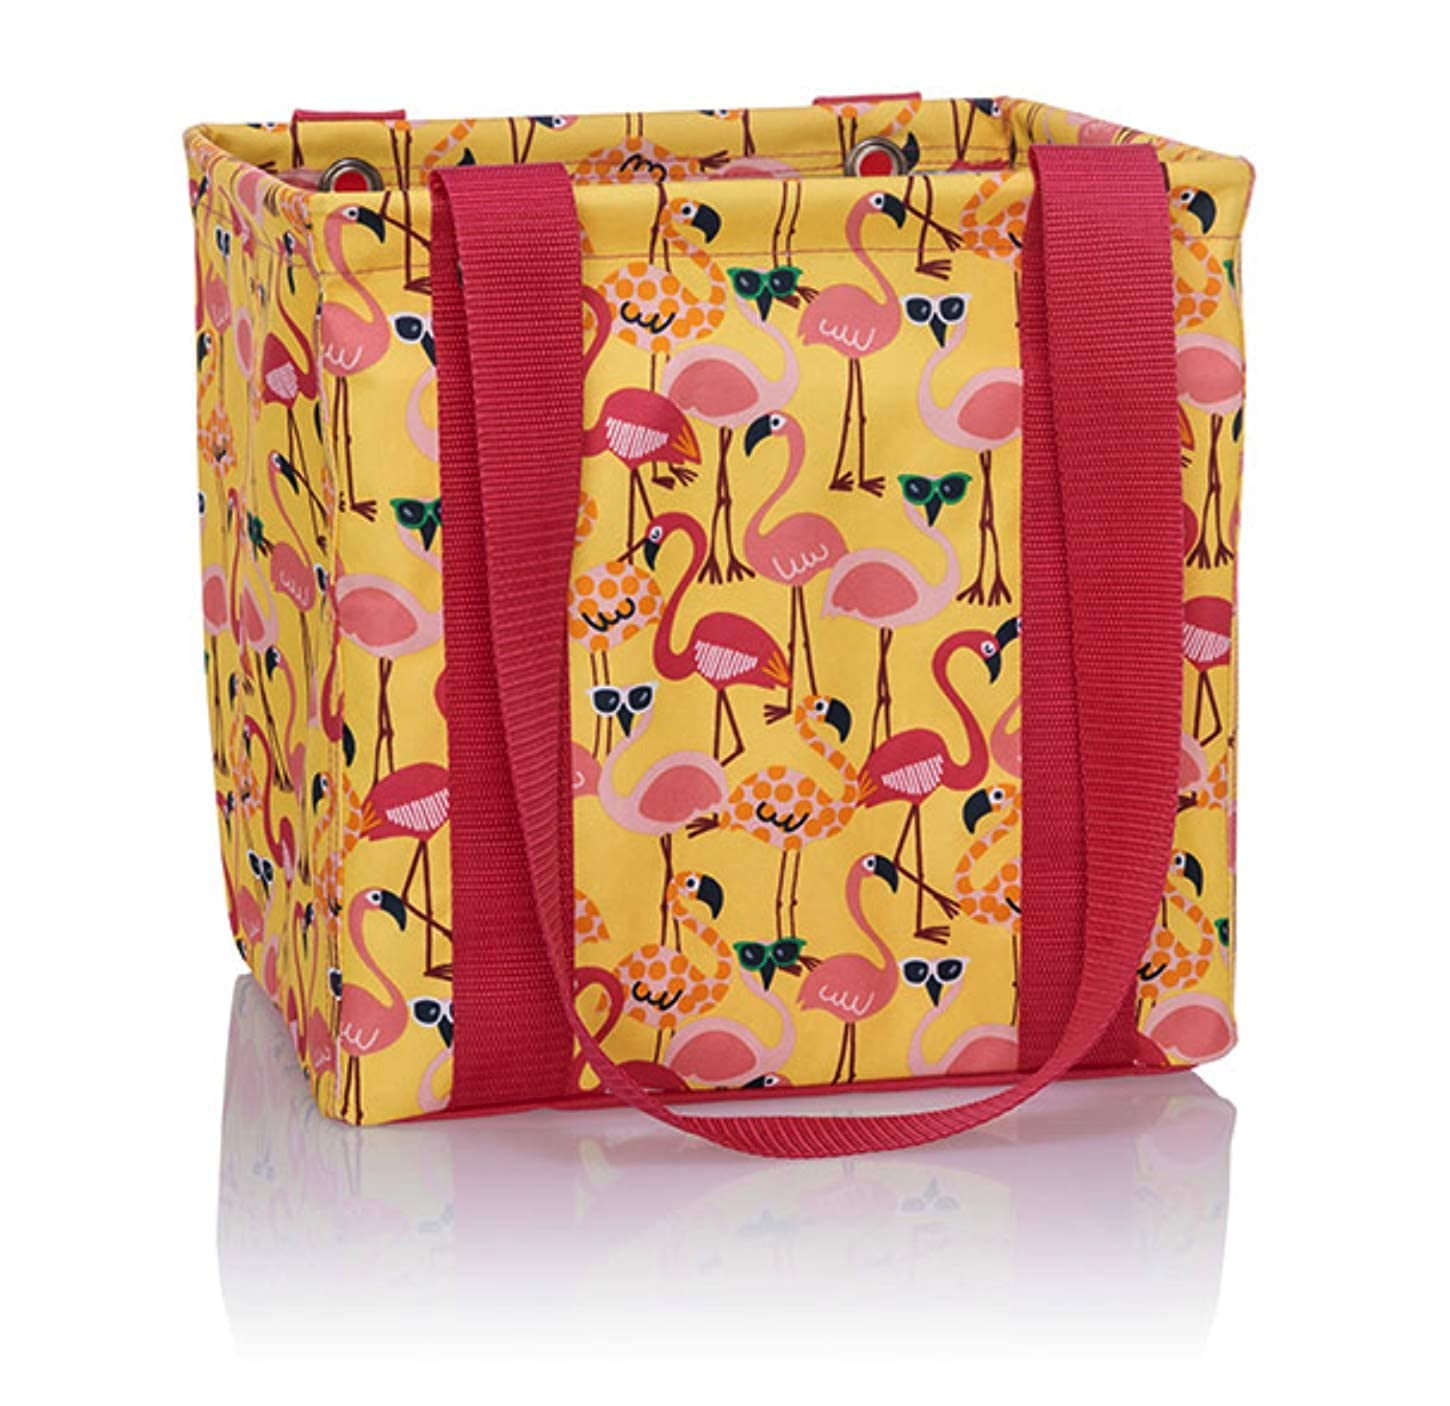 9cdf9bd792c Thirty One Small Utility Tote - 9337 - No Embroidery - in Let's Flamingle